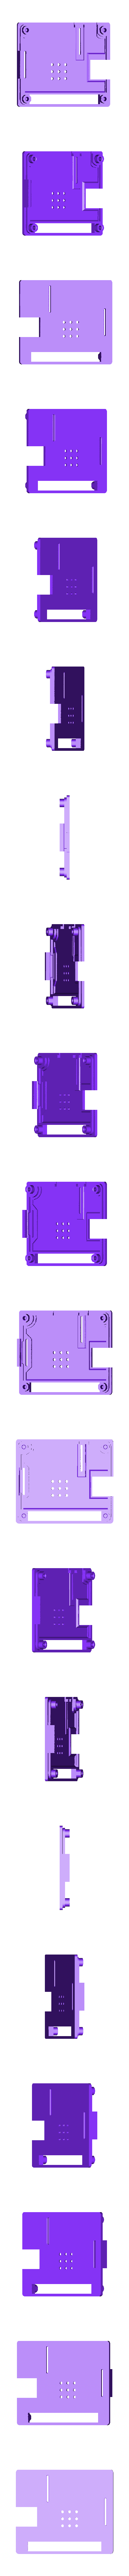 A_plus_compact_top.stl Download free STL file A very compact Raspberry Pi A+ case • 3D printable template, Lassaalk